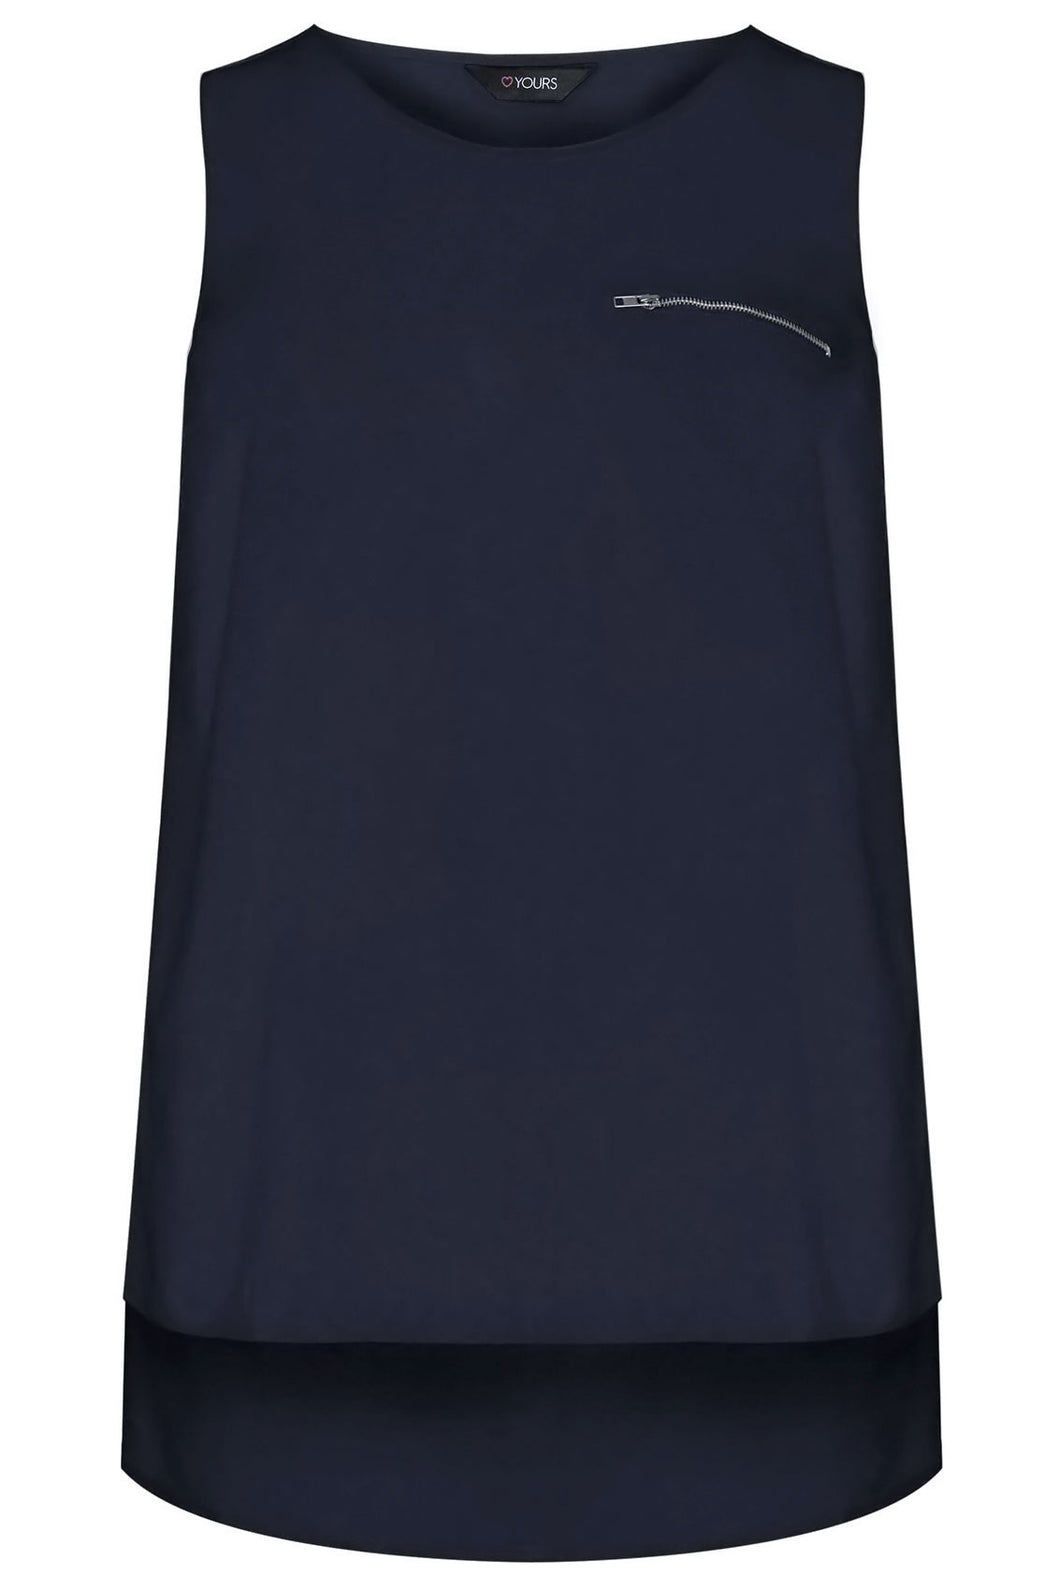 Navy Sleeveless Dipped Hem Top With Zip Pocket Detail